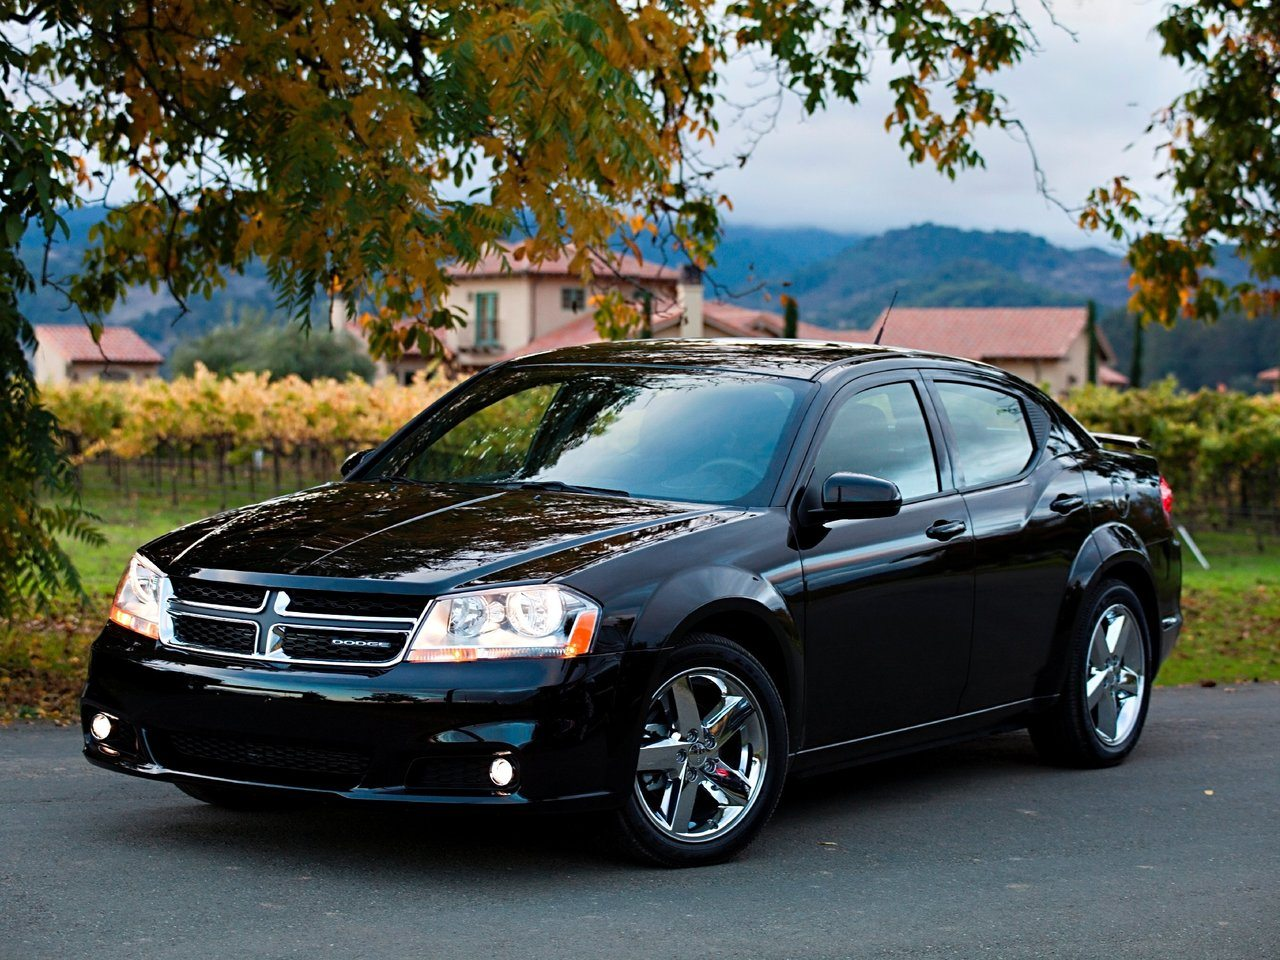 2016 Dodge Avenger >> 2017 Dodge Avenger - Redesign & Feature Details